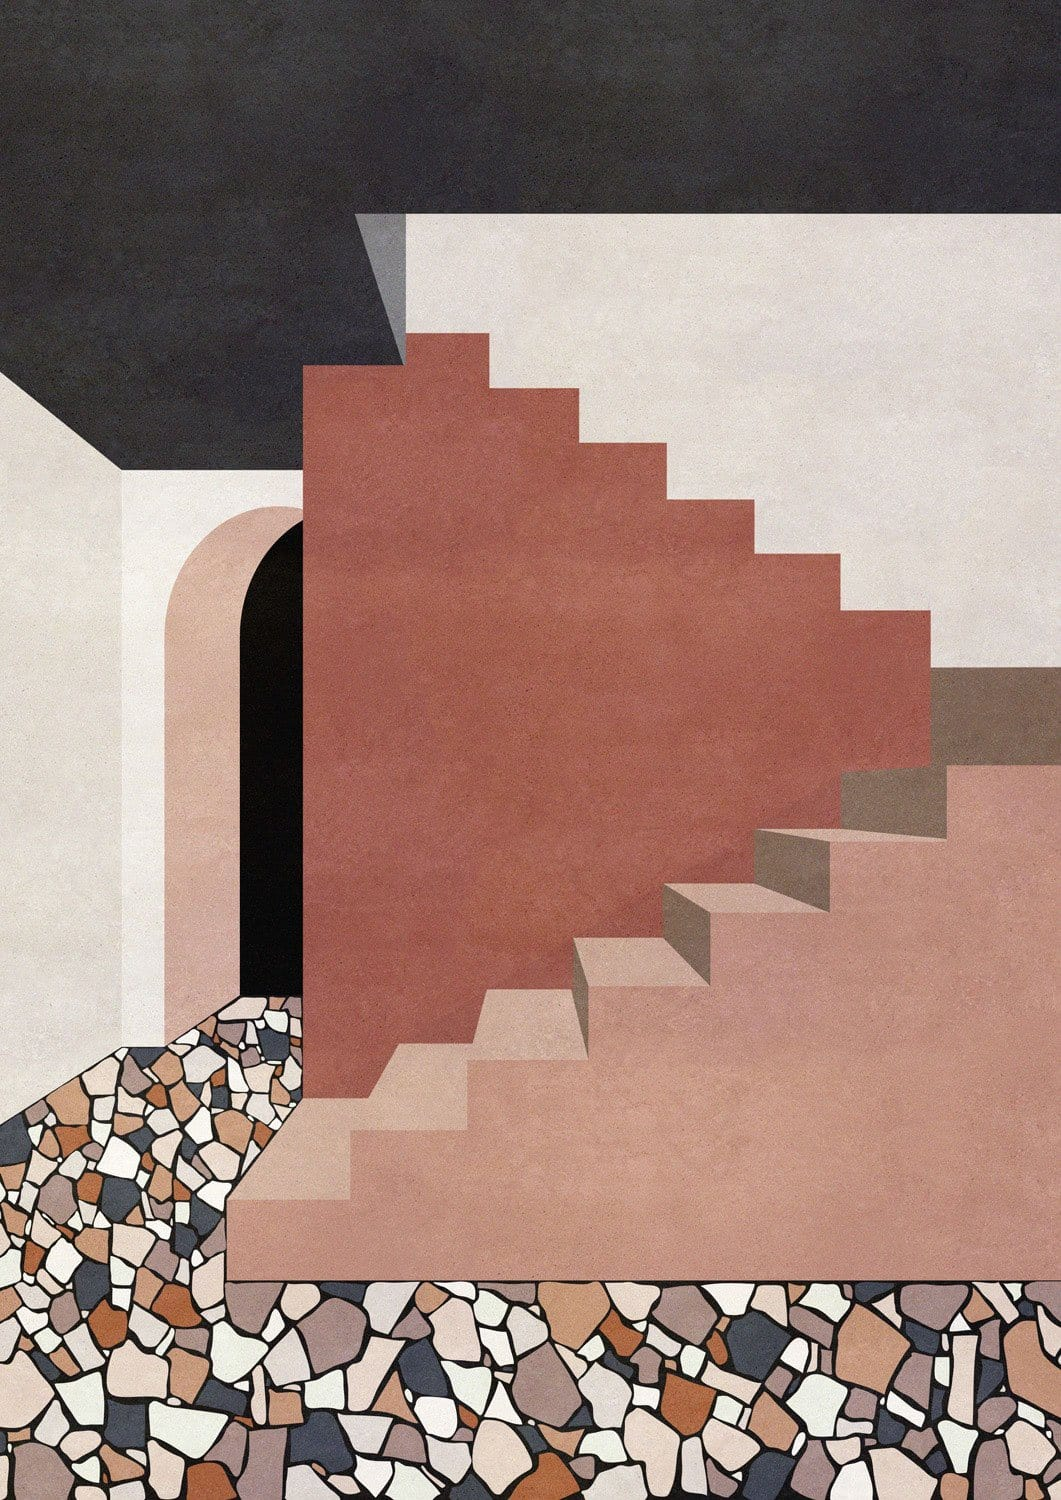 Terrazzo Interior - Limited Edition Print by Charlotte Taylor | Shop Prints | Greenhouse Interiors